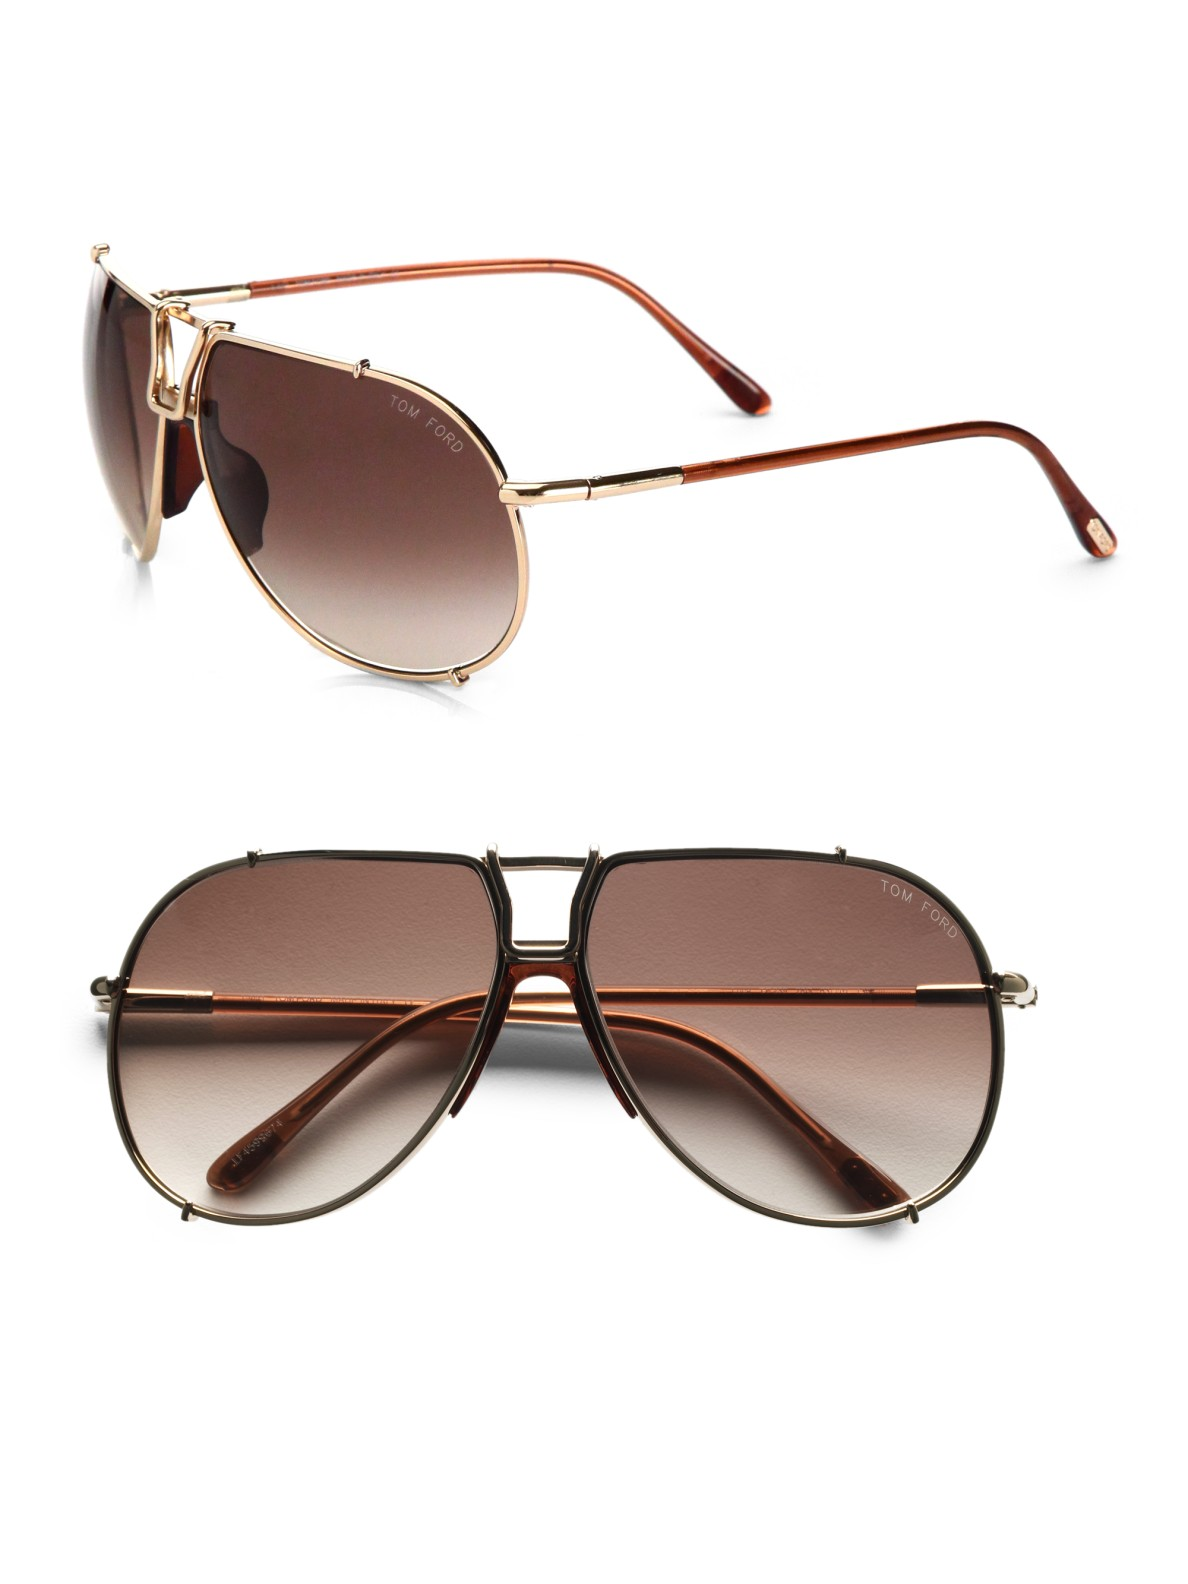 tom ford metal aviator sunglasses in brown for men lyst. Black Bedroom Furniture Sets. Home Design Ideas